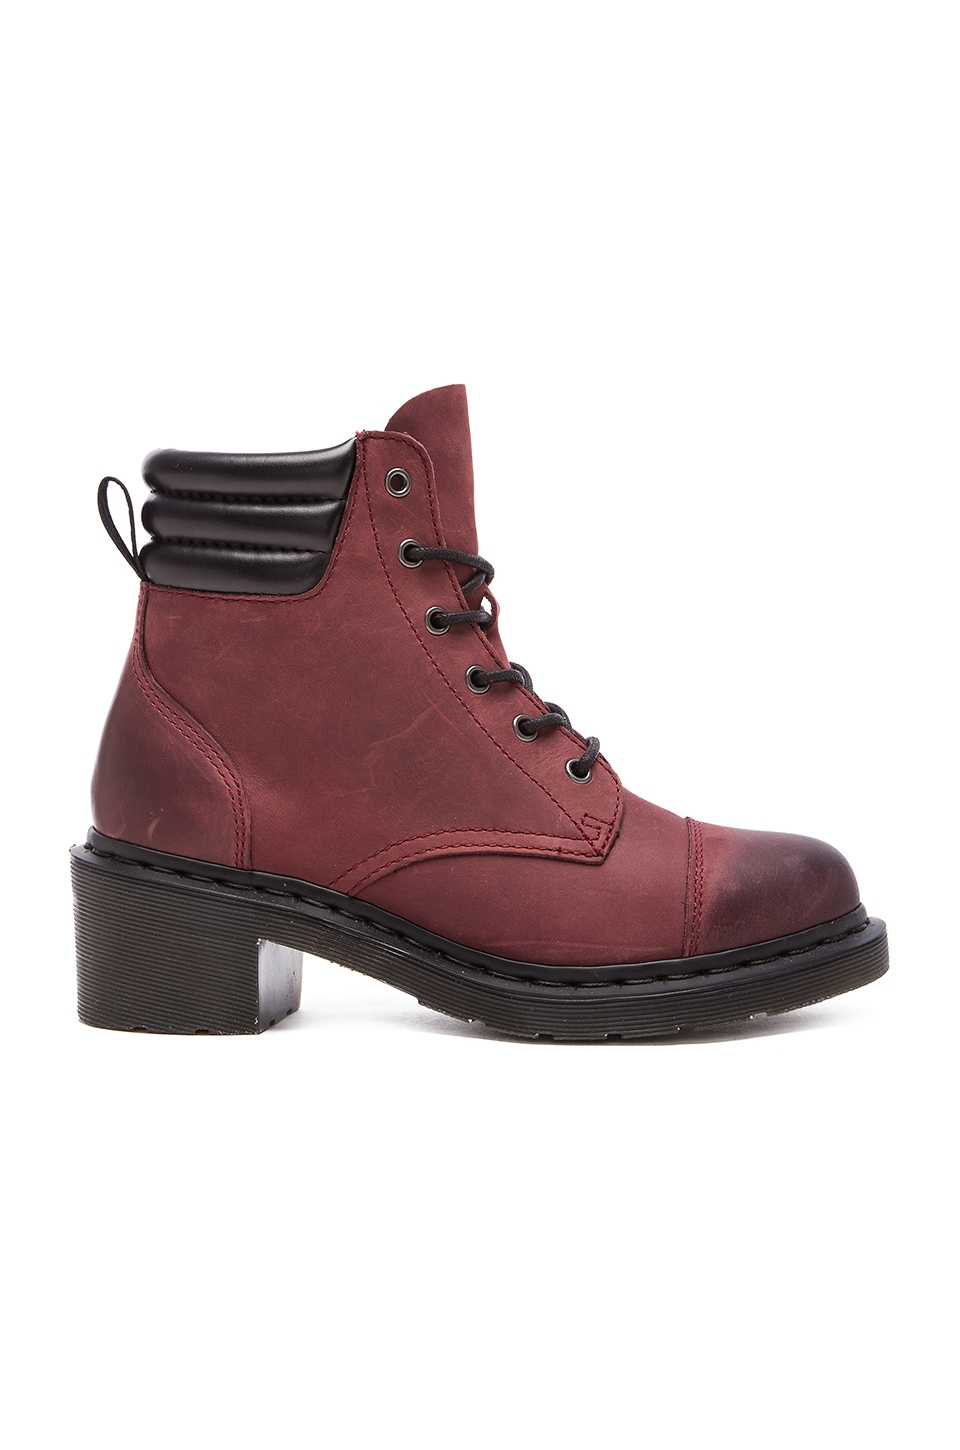 Dr. Martens Alexandra 6-Eye Padded Collar Boot in Old Cherry